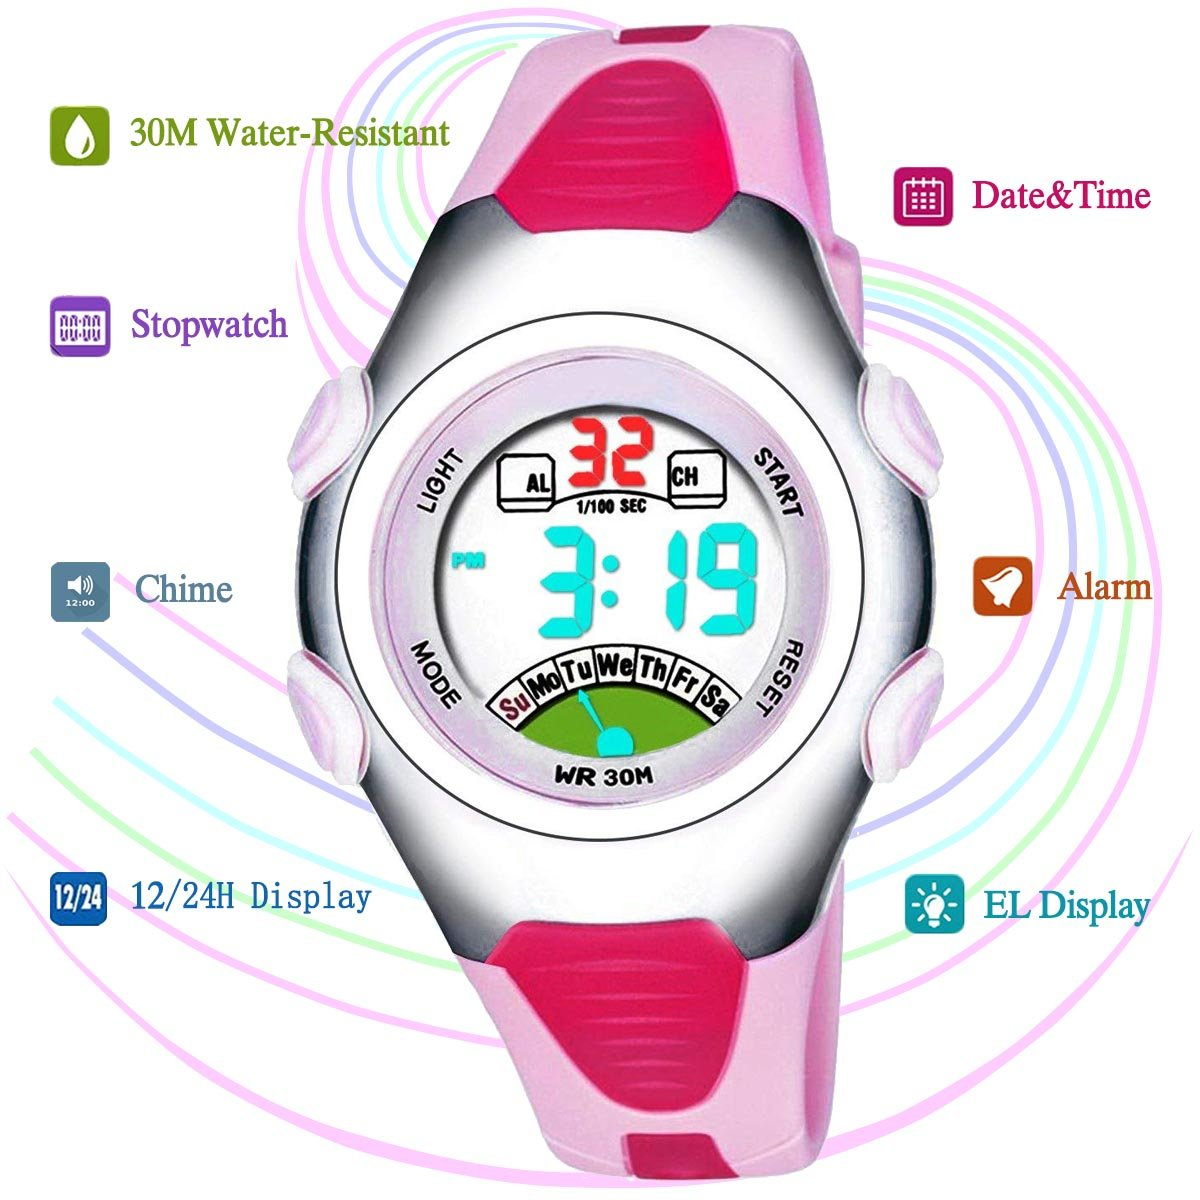 Very Sweet Children Boys Girls Digital Waterproof Luminous Watches with Alarm Chronograph Date - Pink by PASNEW